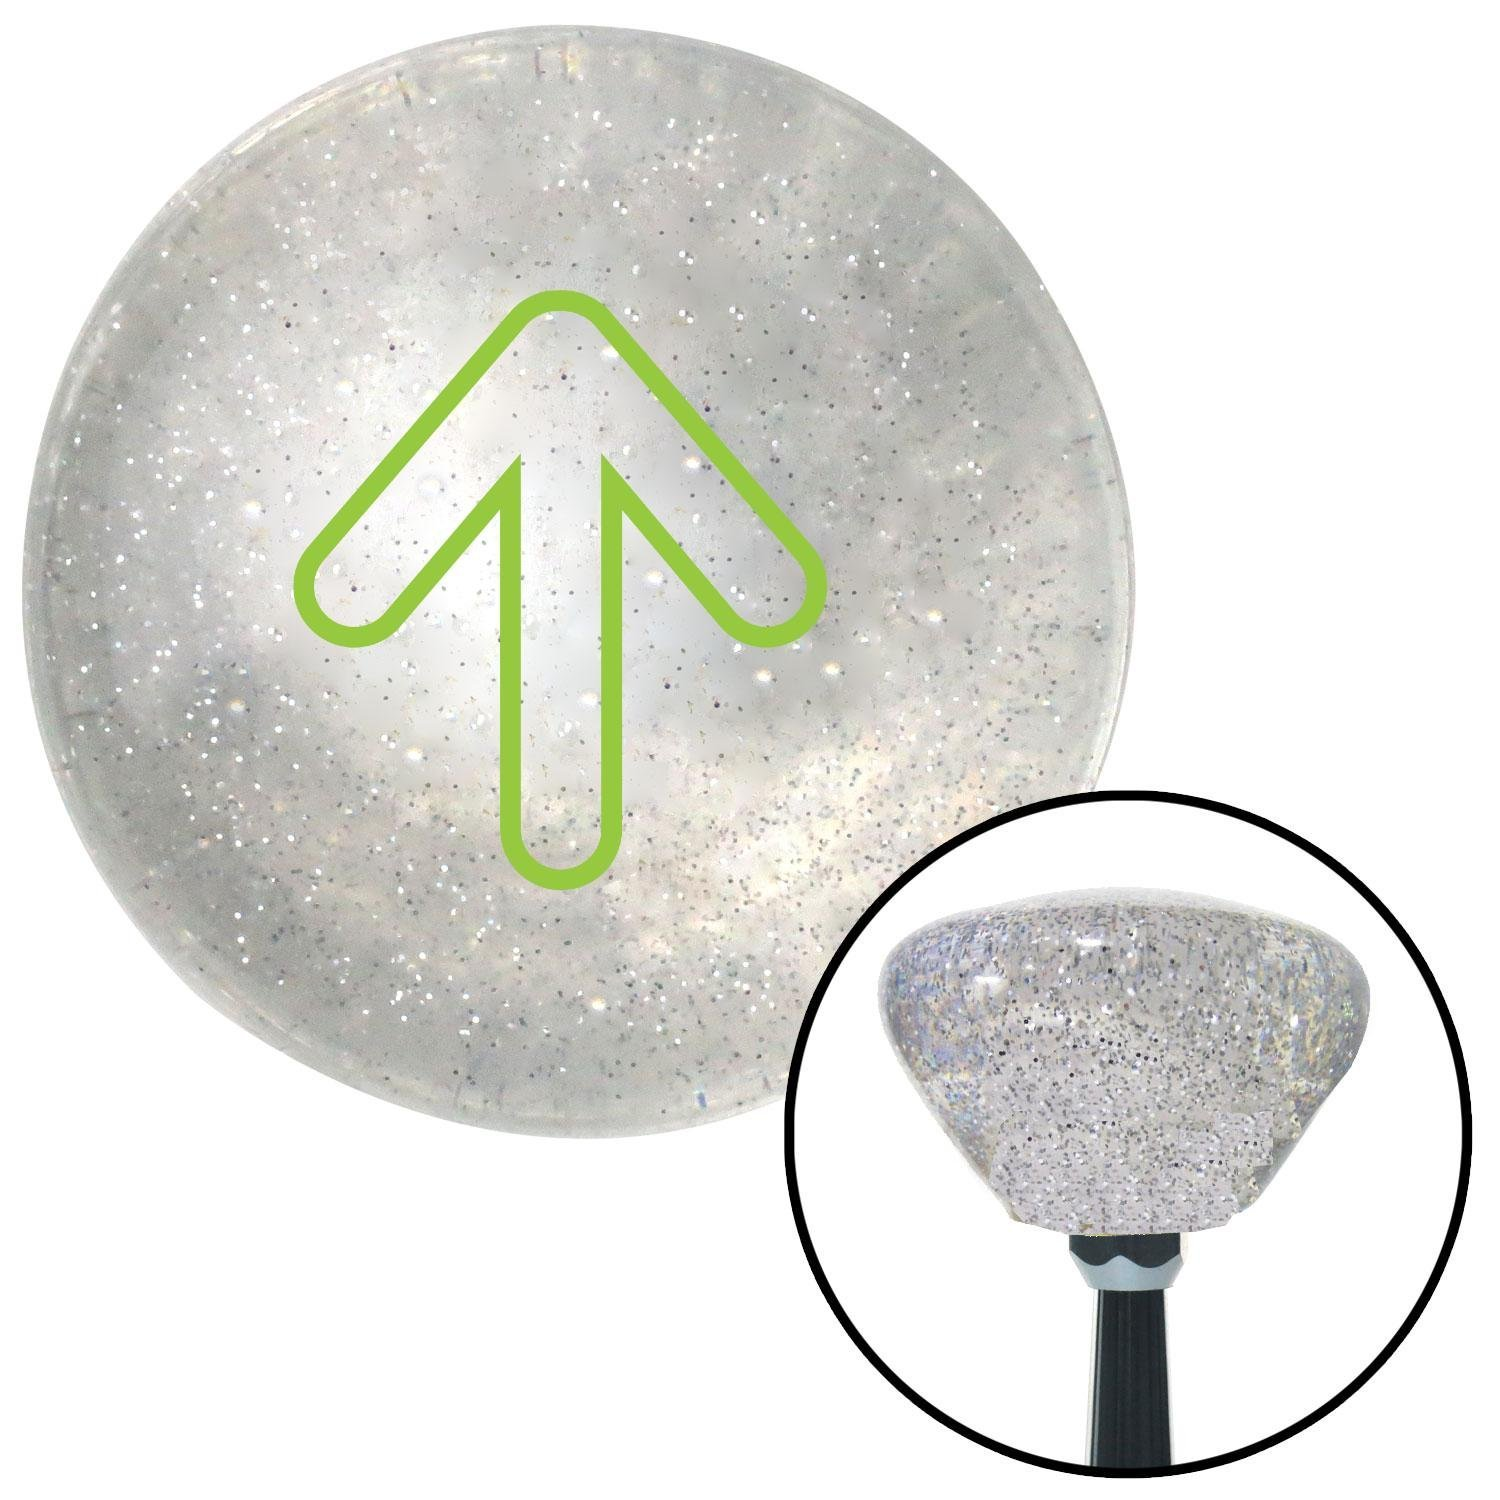 Green Bubble Directional Arrow Up American Shifter 160101 Clear Retro Metal Flake Shift Knob with M16 x 1.5 Insert